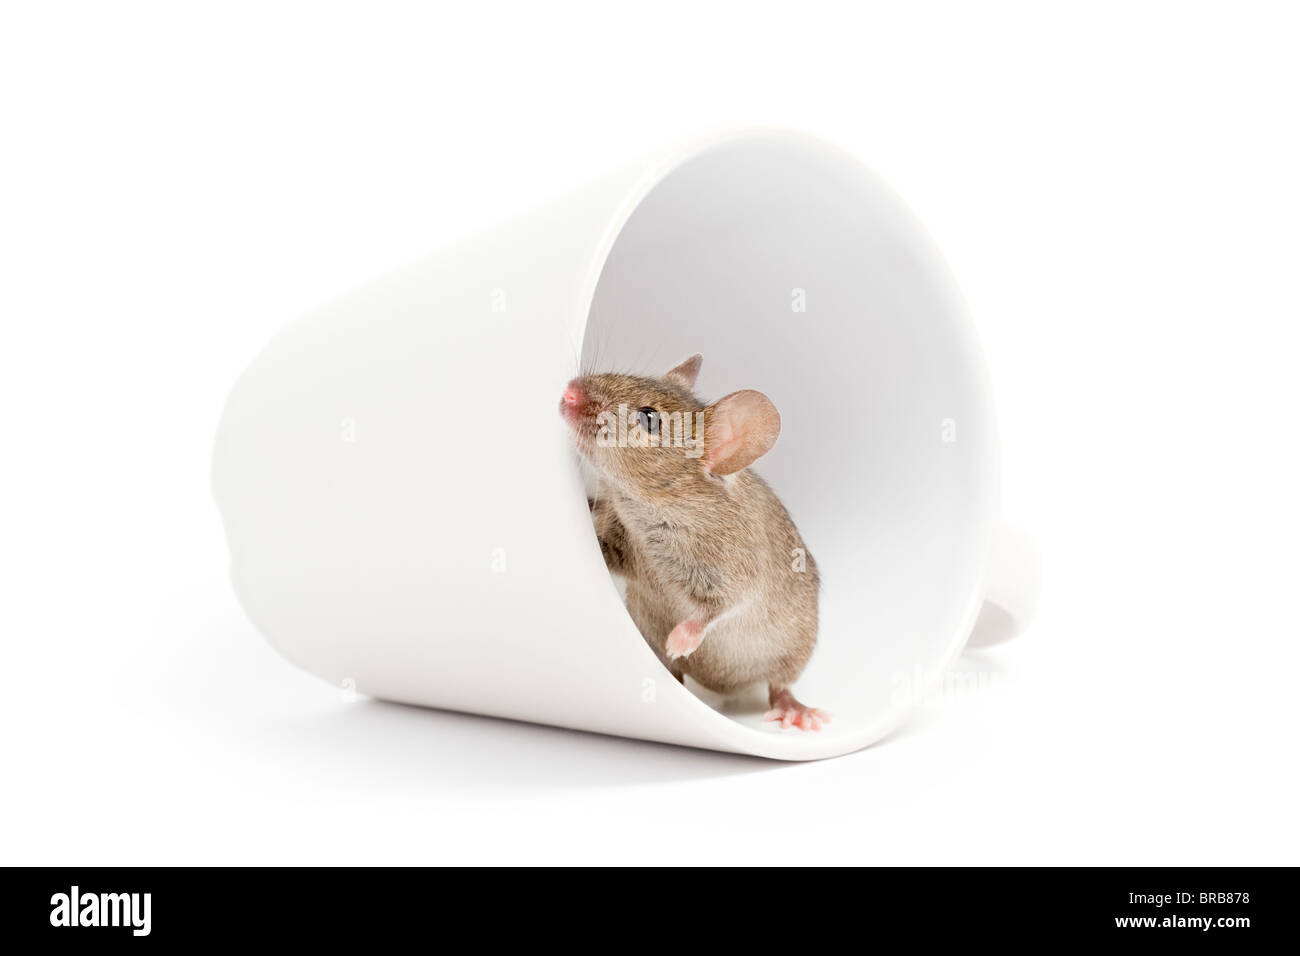 cute grey mouse looking out of a cup isolated on white background - Stock Image